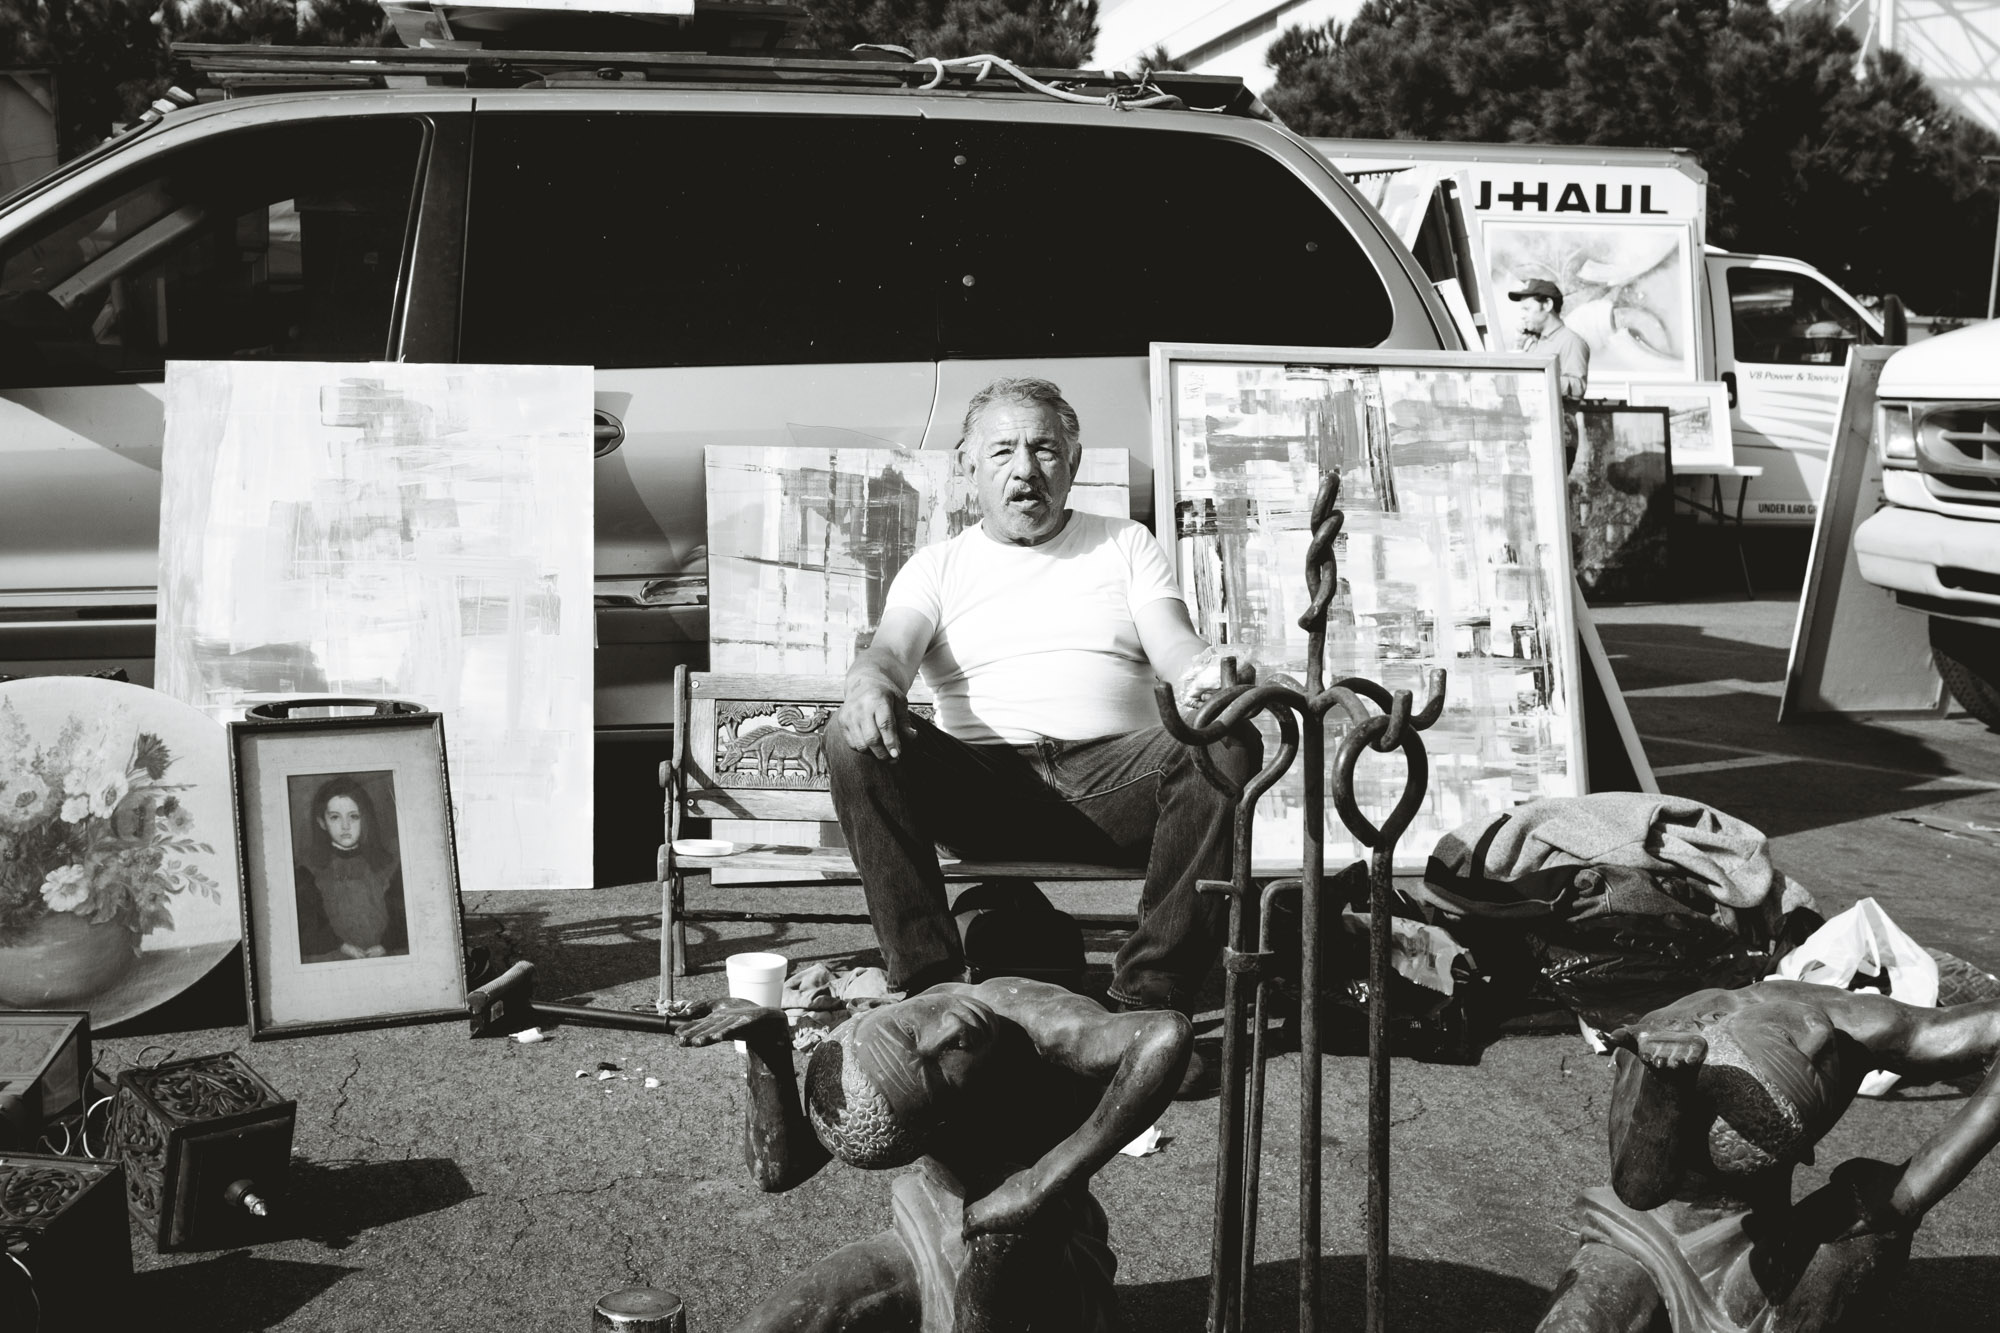 Man sitting at booth at Long Beach Antique Swap Meet